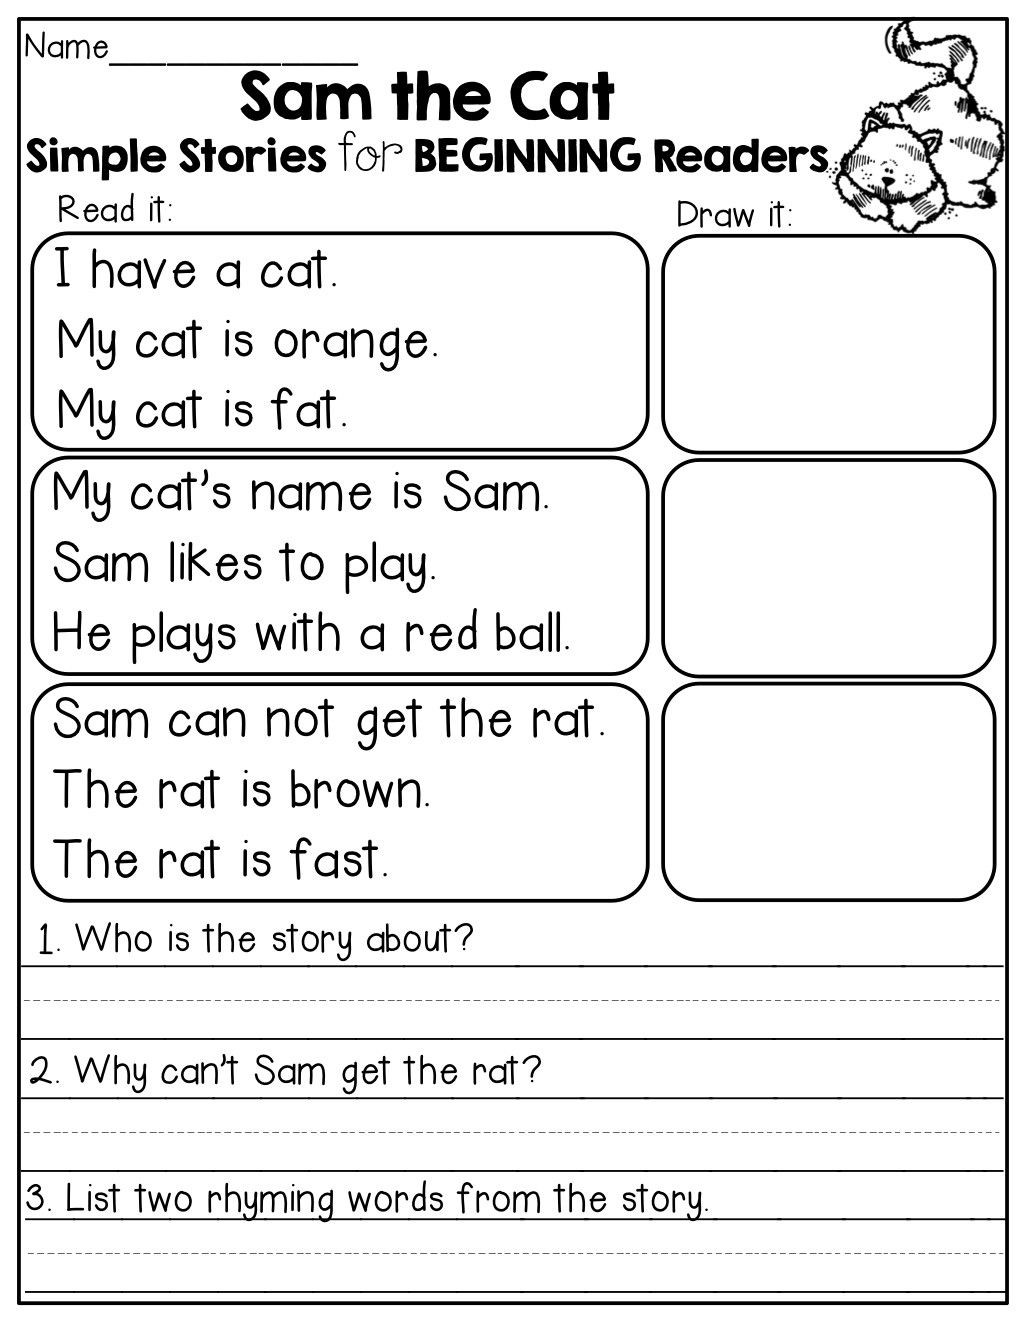 Volume Worksheets 3rd Grade Worksheet Free Simple Math Worksheets Volume Activities